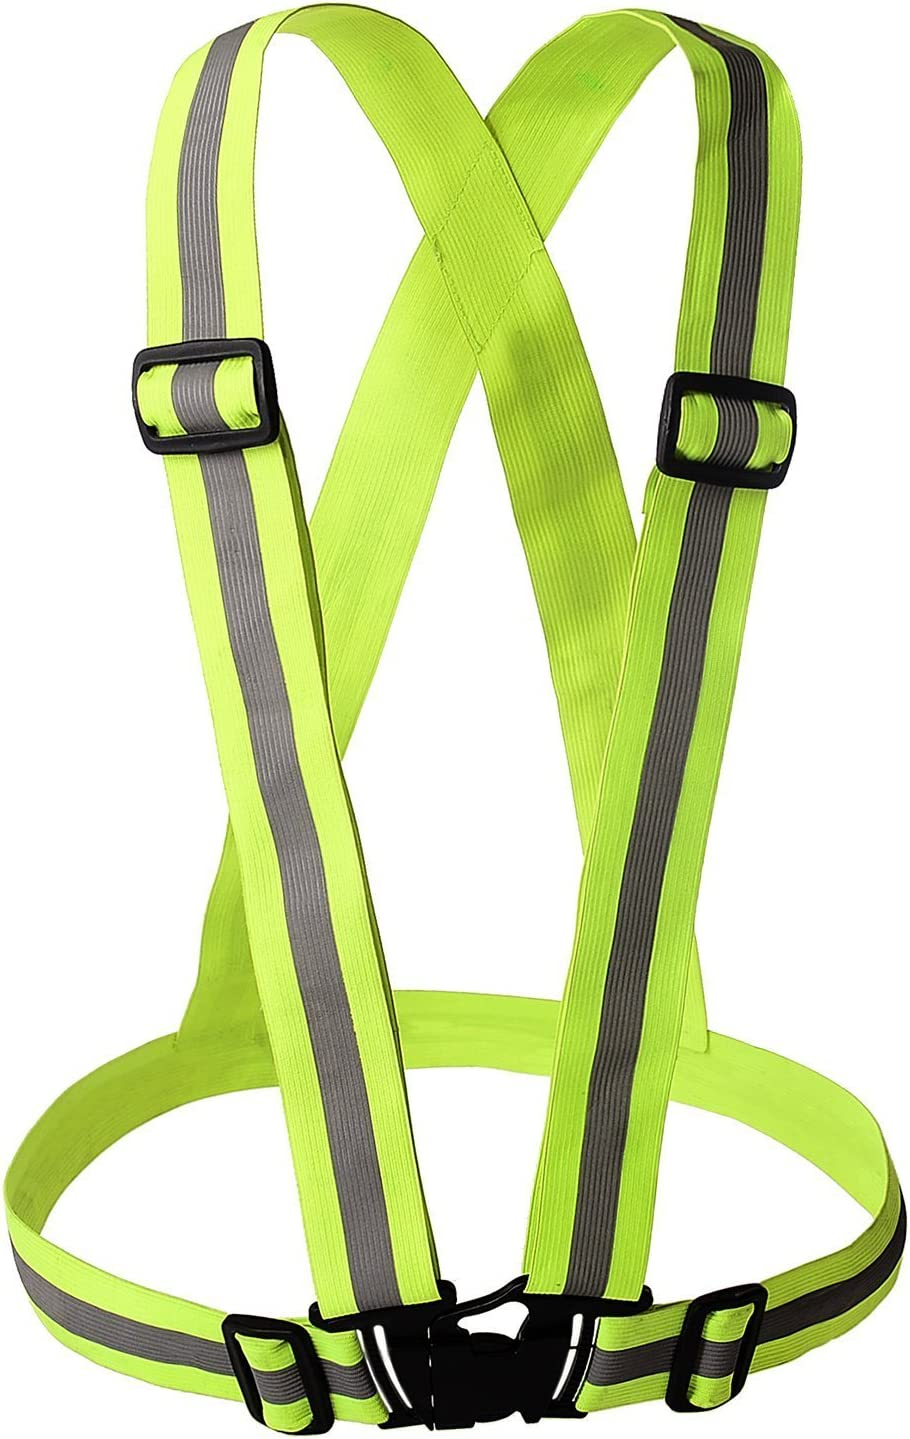 YOA Reflective Vest - Safety Vest   Nighttime High Visibility for Running - Cycling - Walking   Easy to Adjust   Lightweight Elastic   Put It on Directly Over Your Shirt - Sports Gear